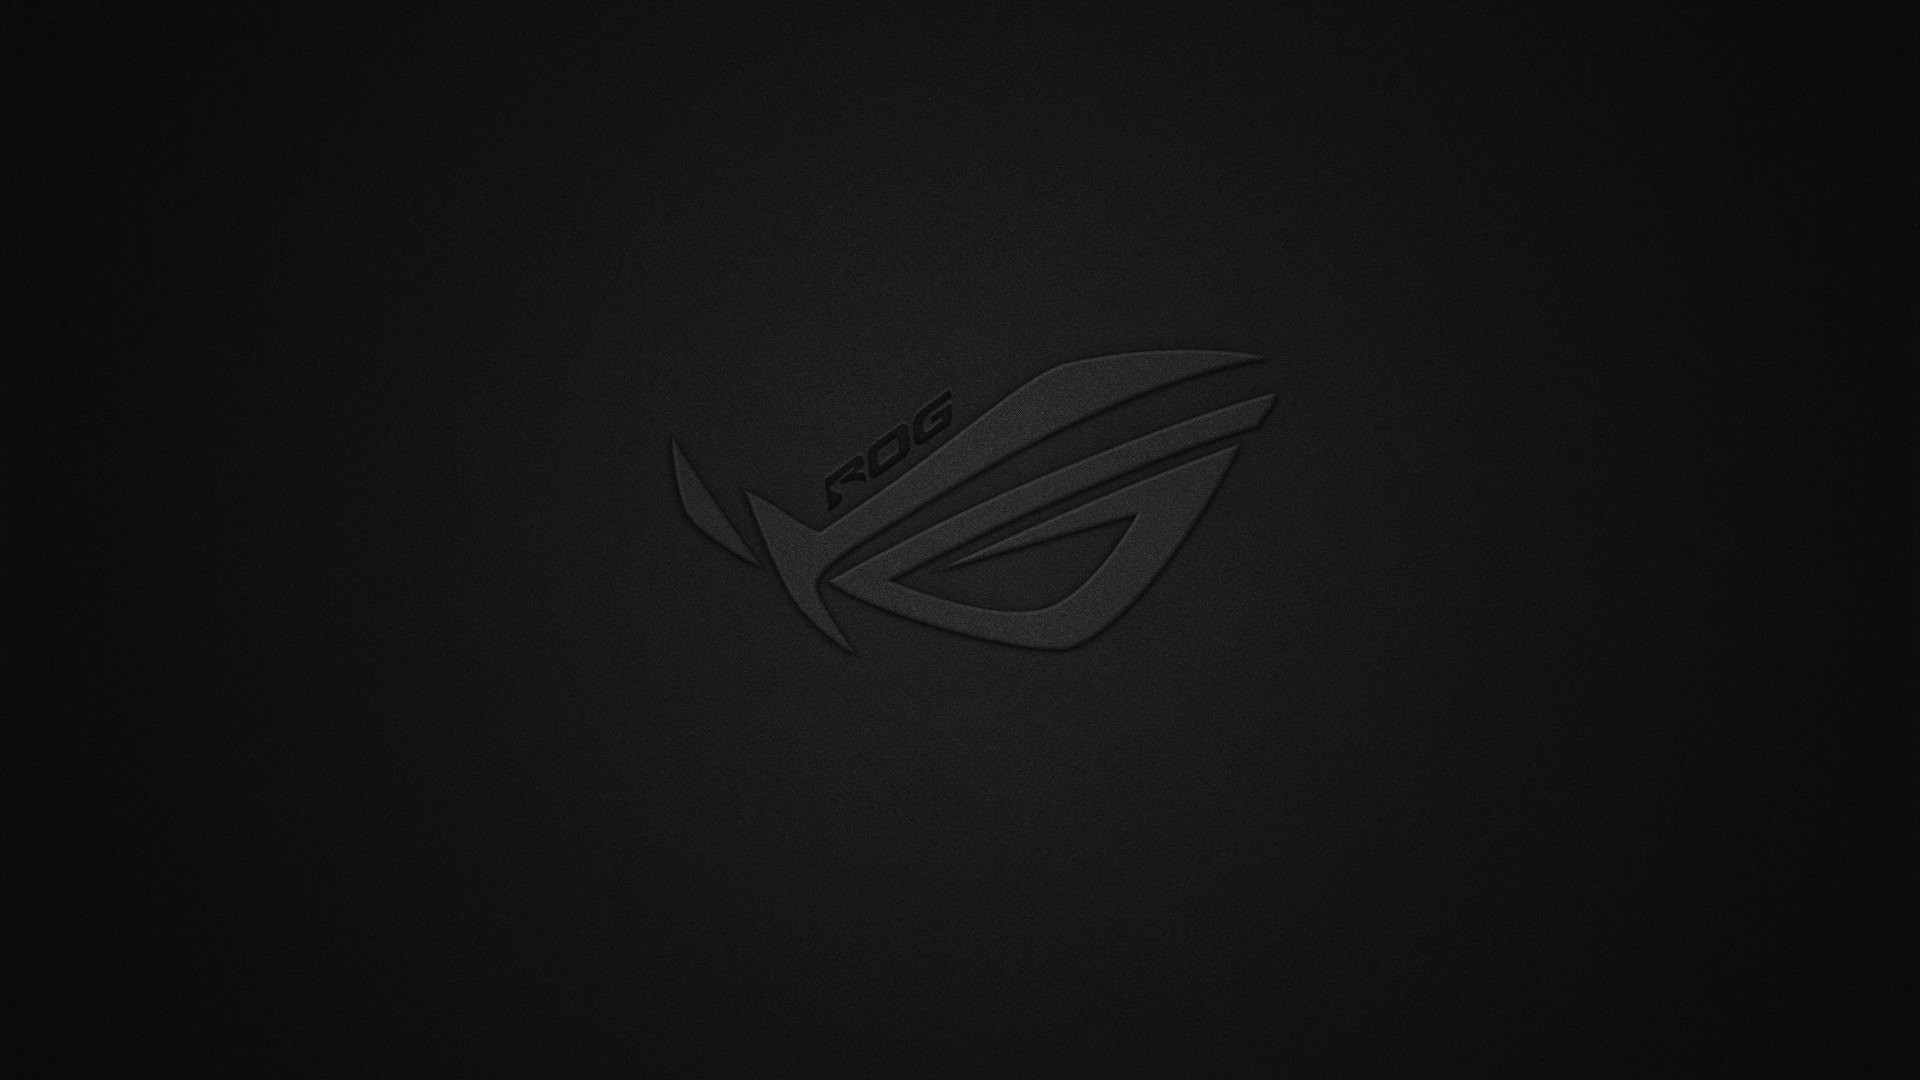 1920x1080 ROG Wallpaper Collection 2012